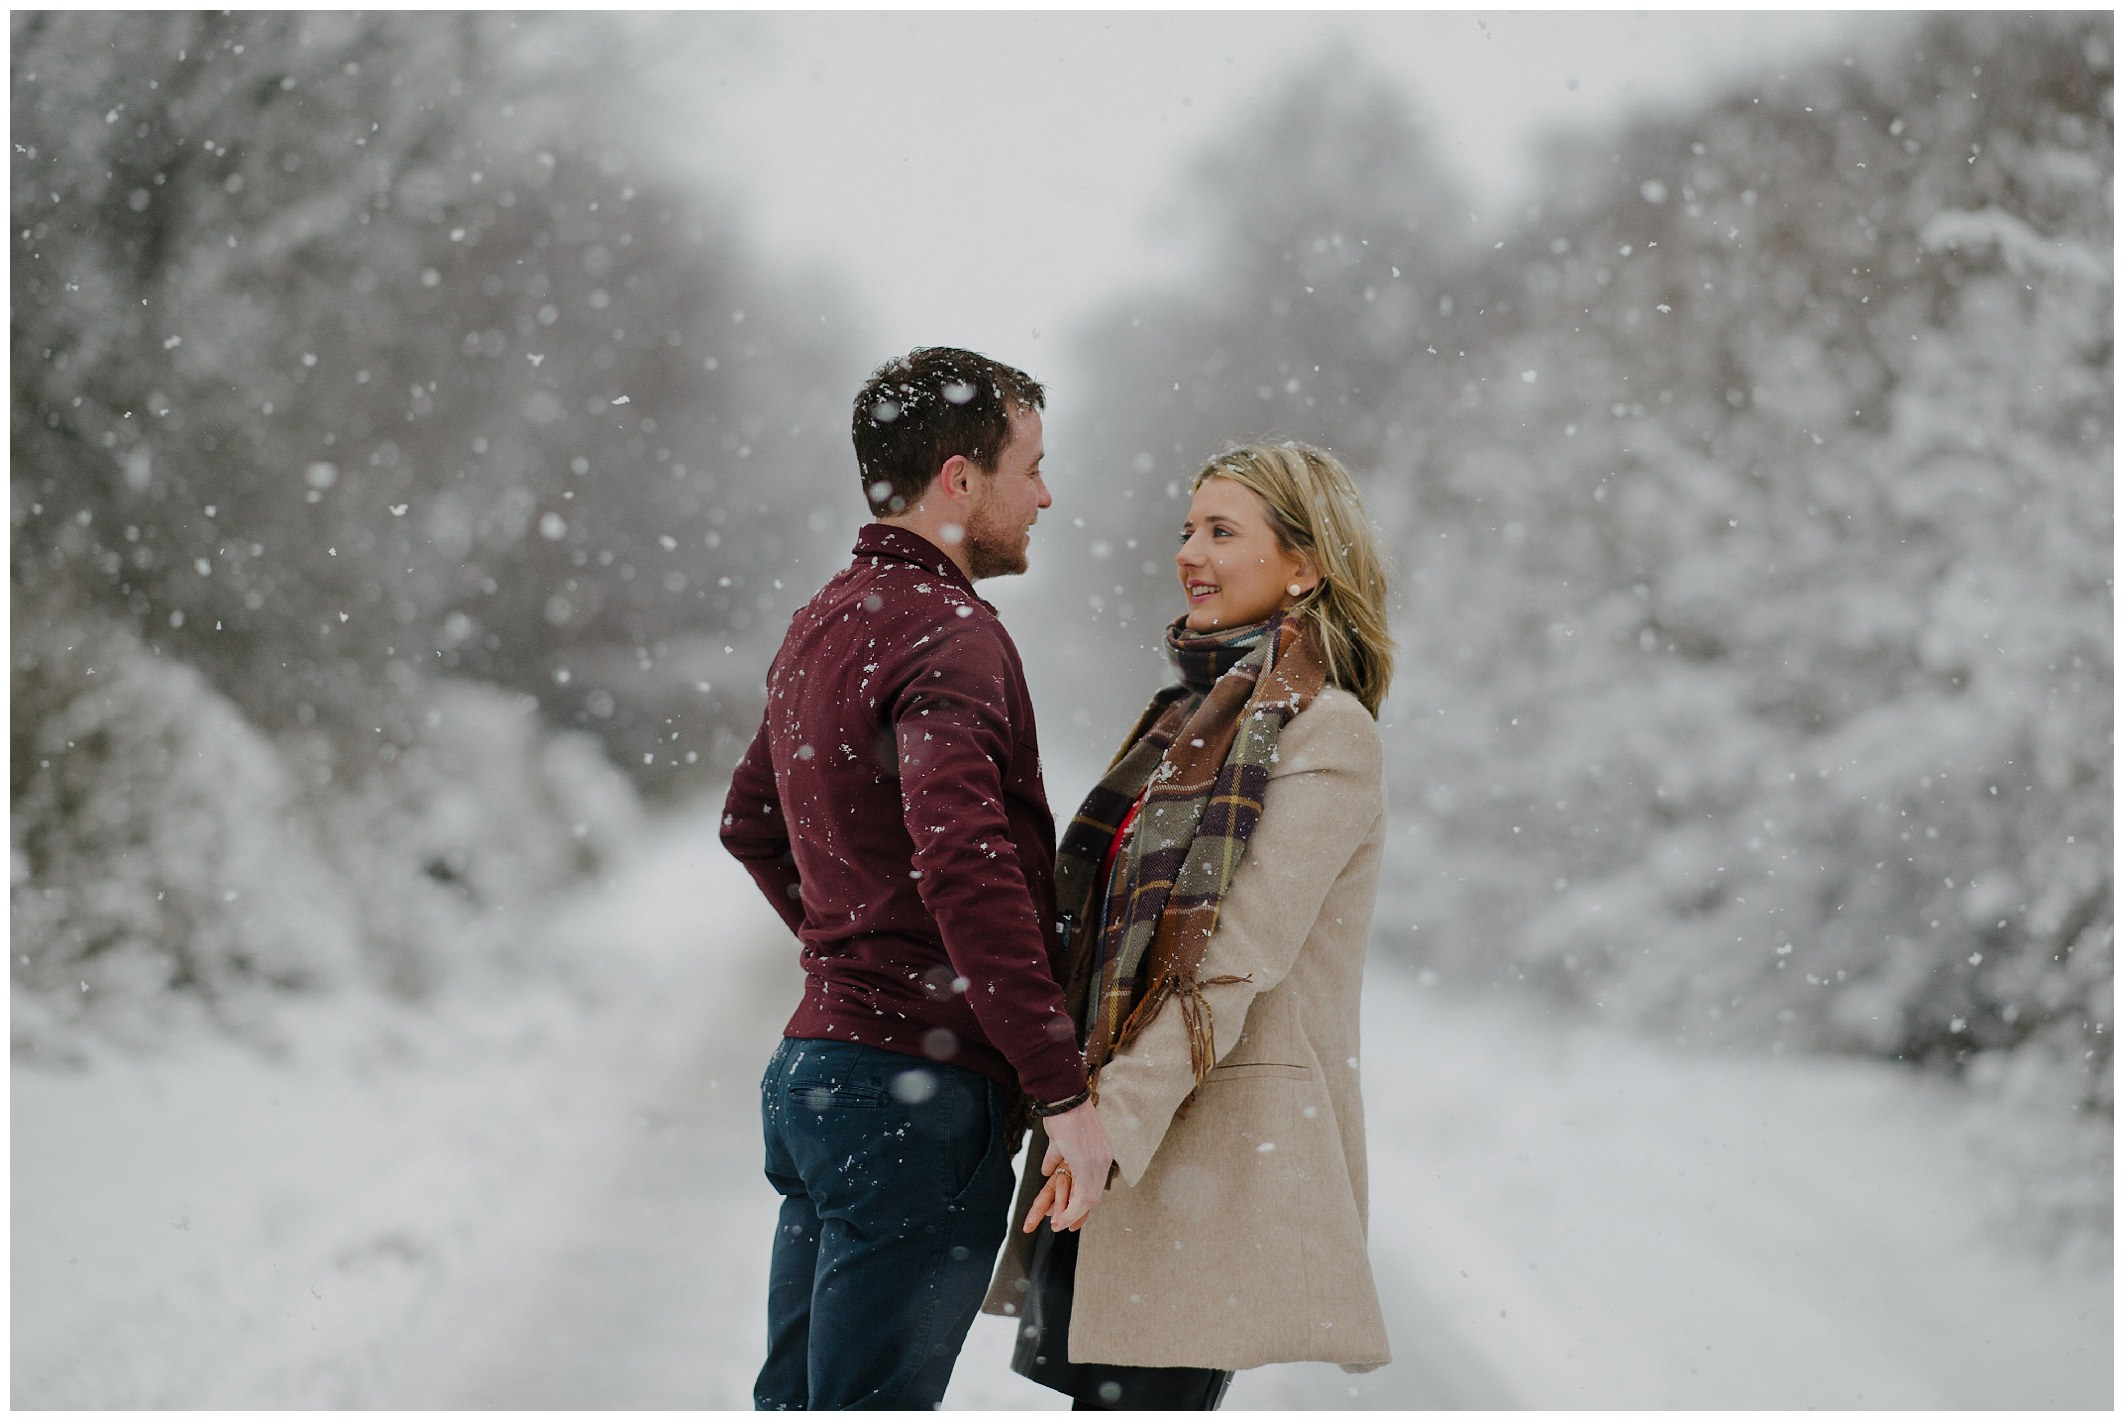 adela_rossa_pre_wedding_jude_browne_photography_0010.jpg